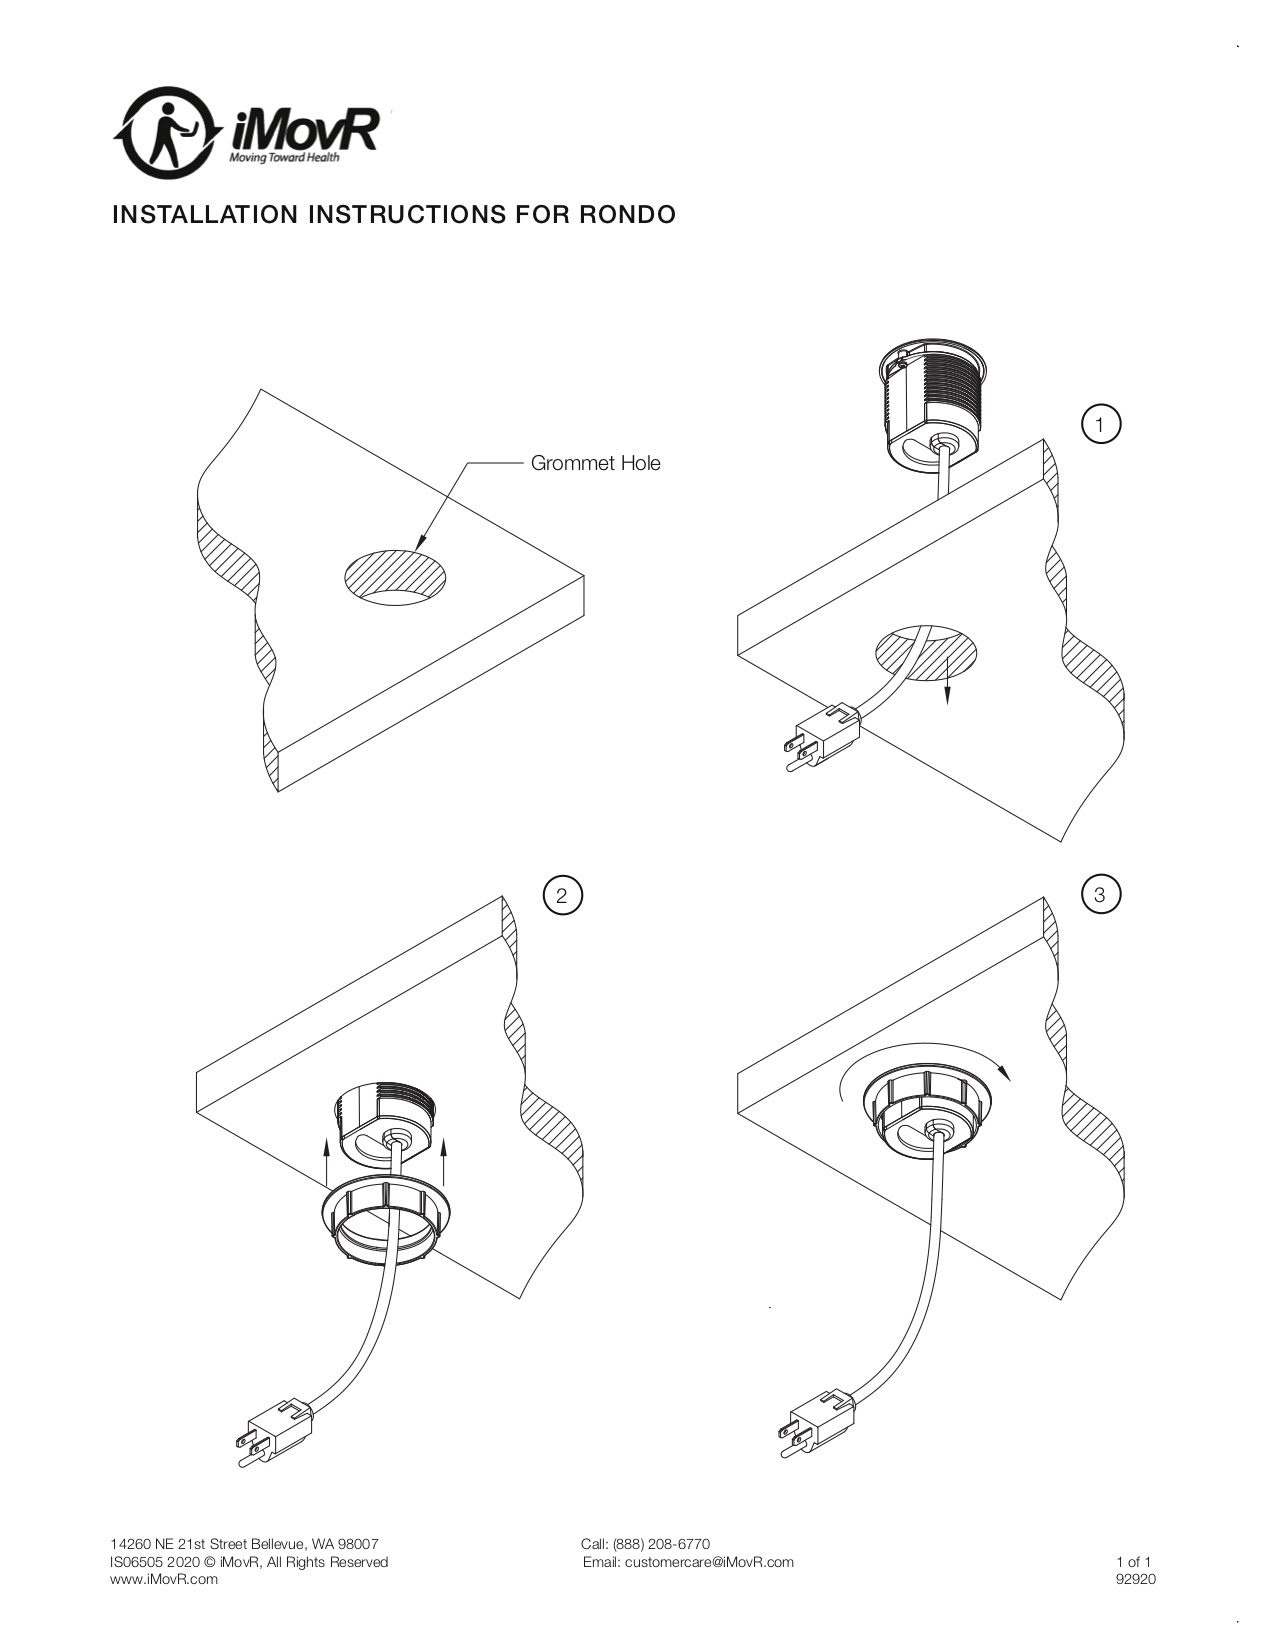 Rondo Instillation Instructions